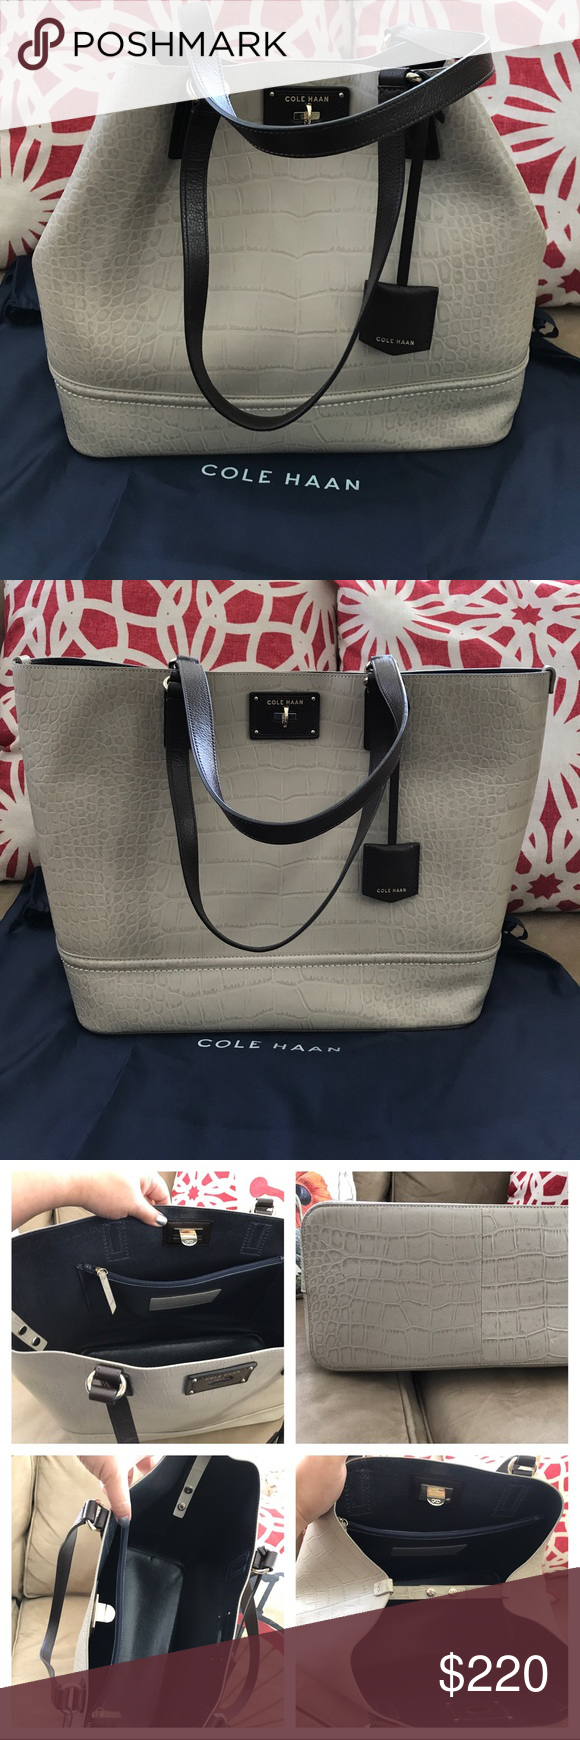 d60c58c26f08 Cole Haan Croc Embossed Leather Tote Taupe Treat yourself to The Jozie tote  from